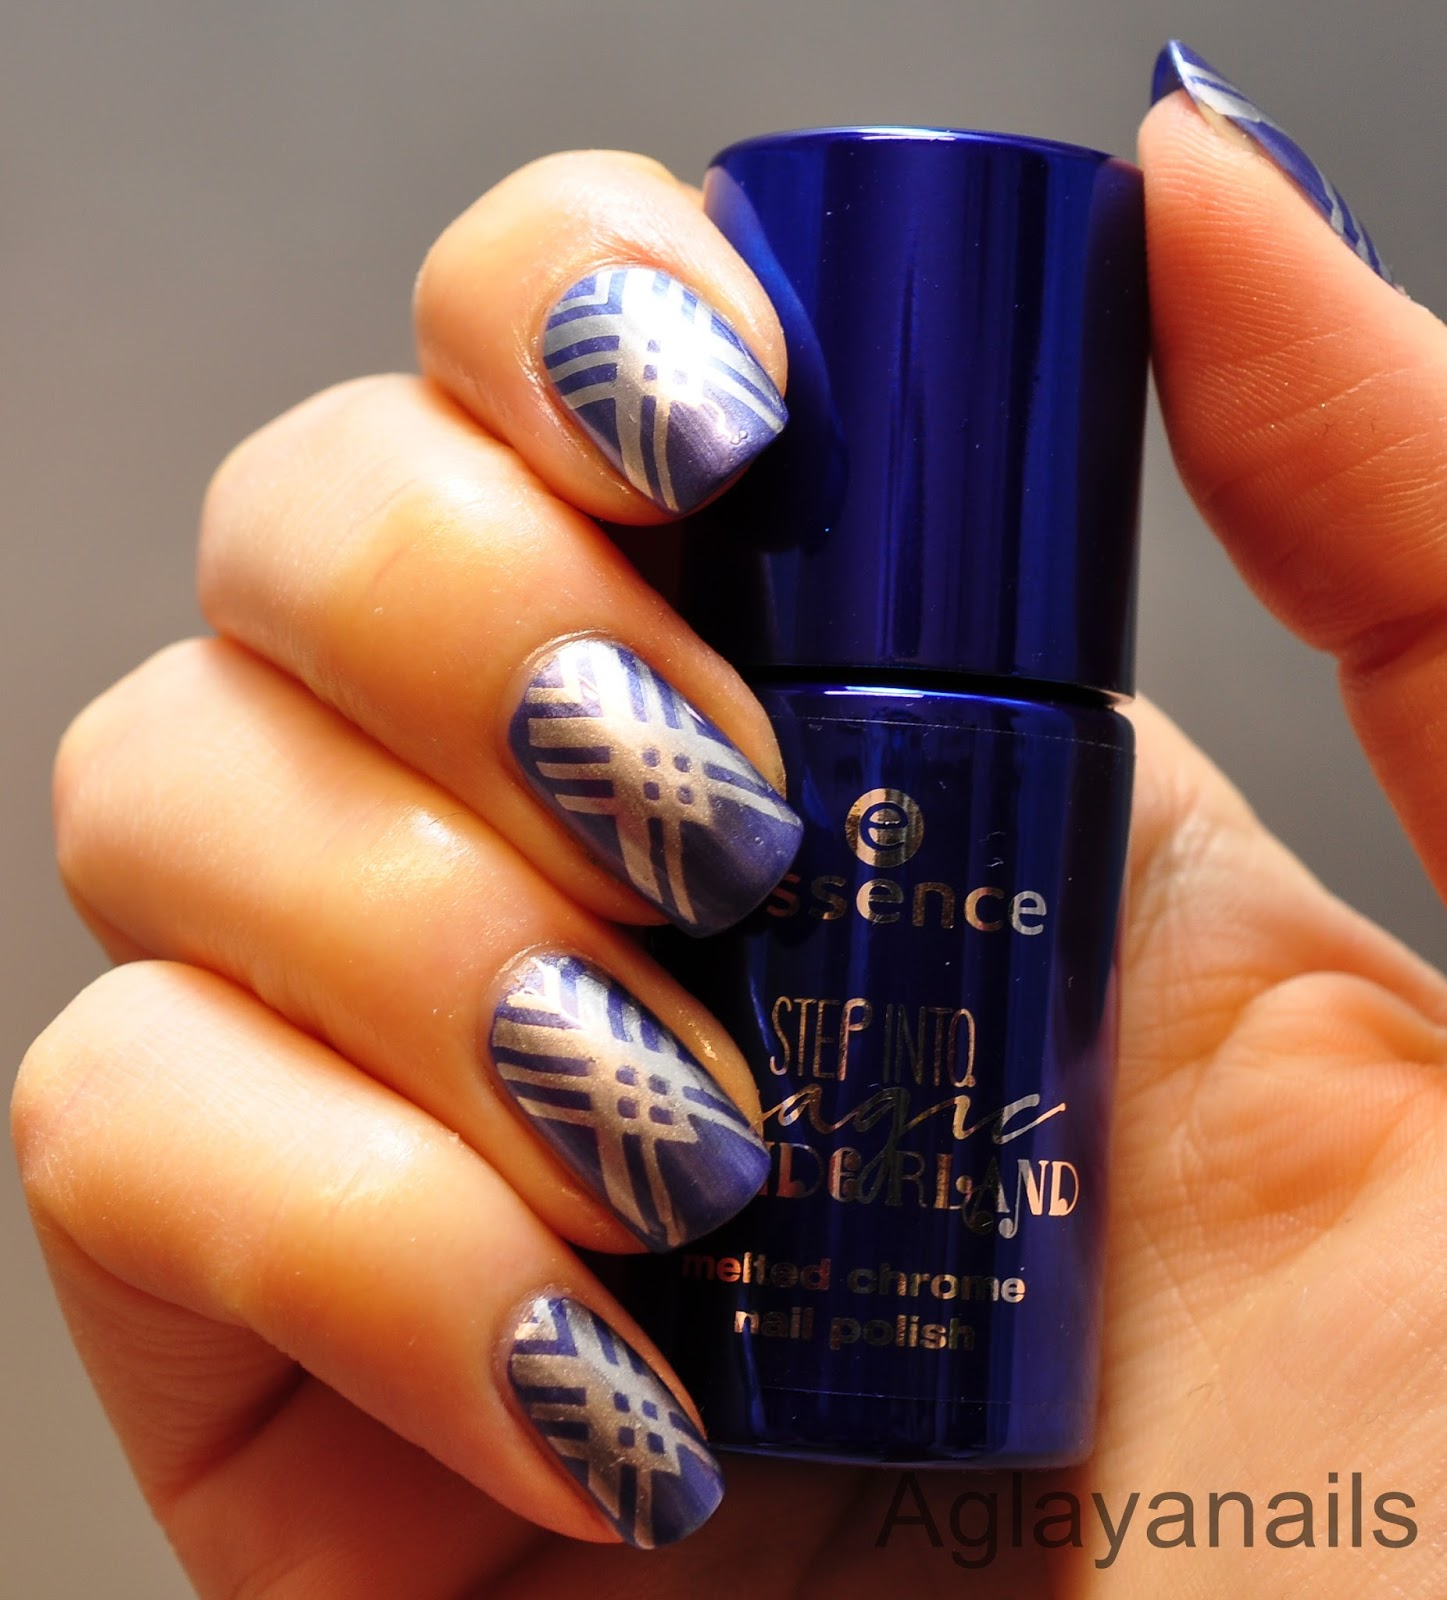 Aglayanails: 26 Great Nail Art Ideas: Metallic + one color